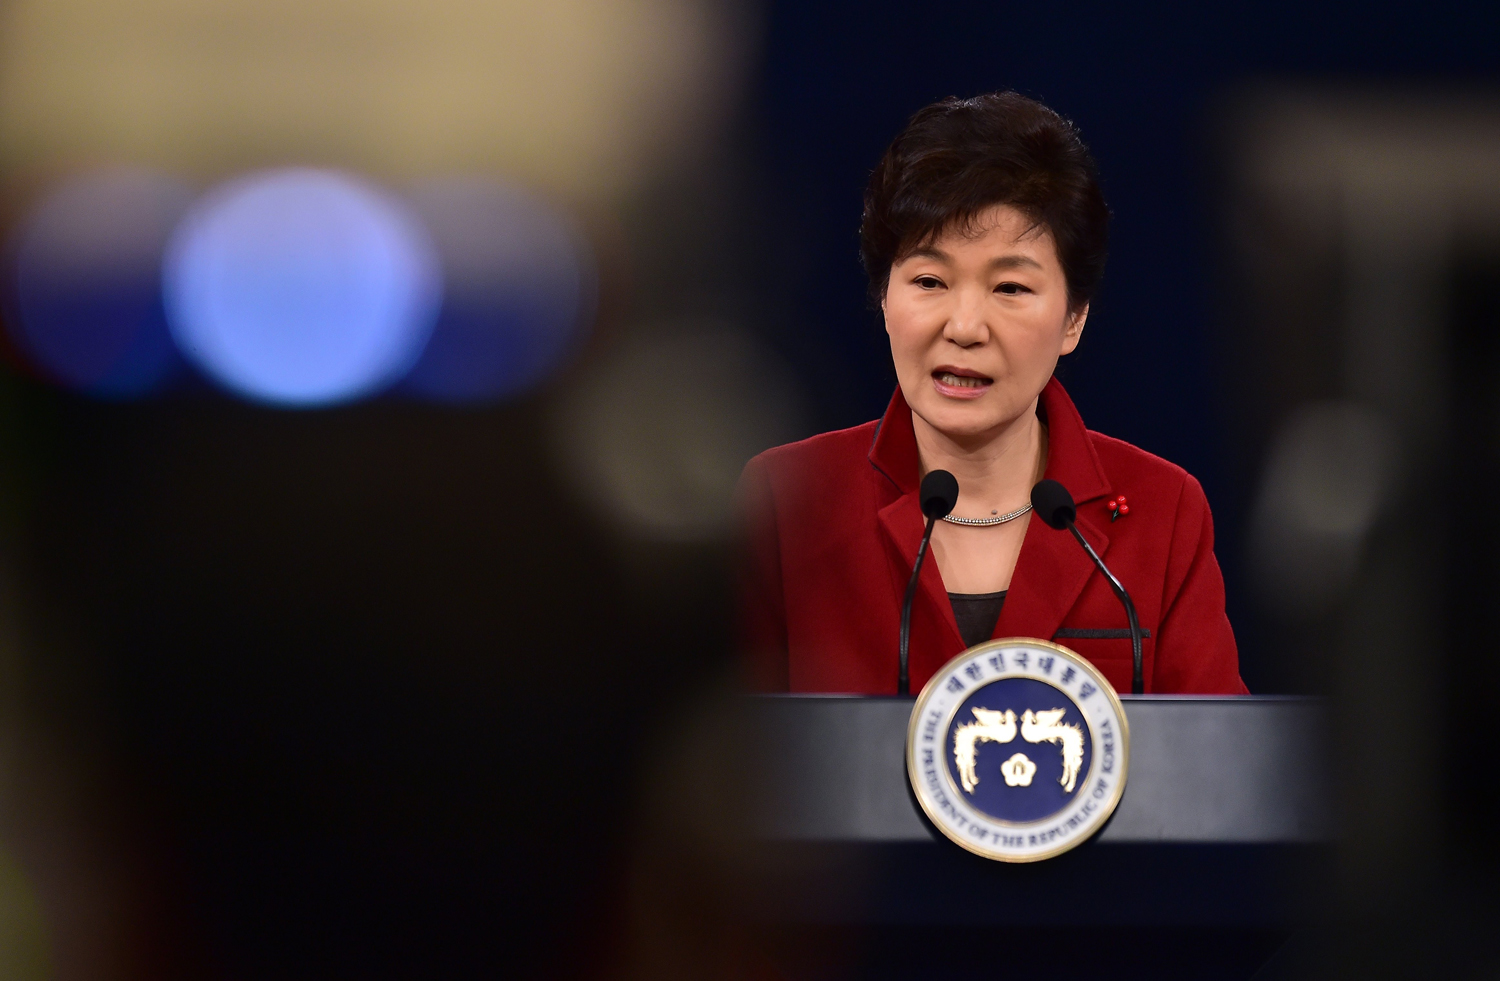 South Korean President Park Geun-Hye speaks during her New Year press conference at the presidential Blue House in Seoul on Jan. 12, 2015.